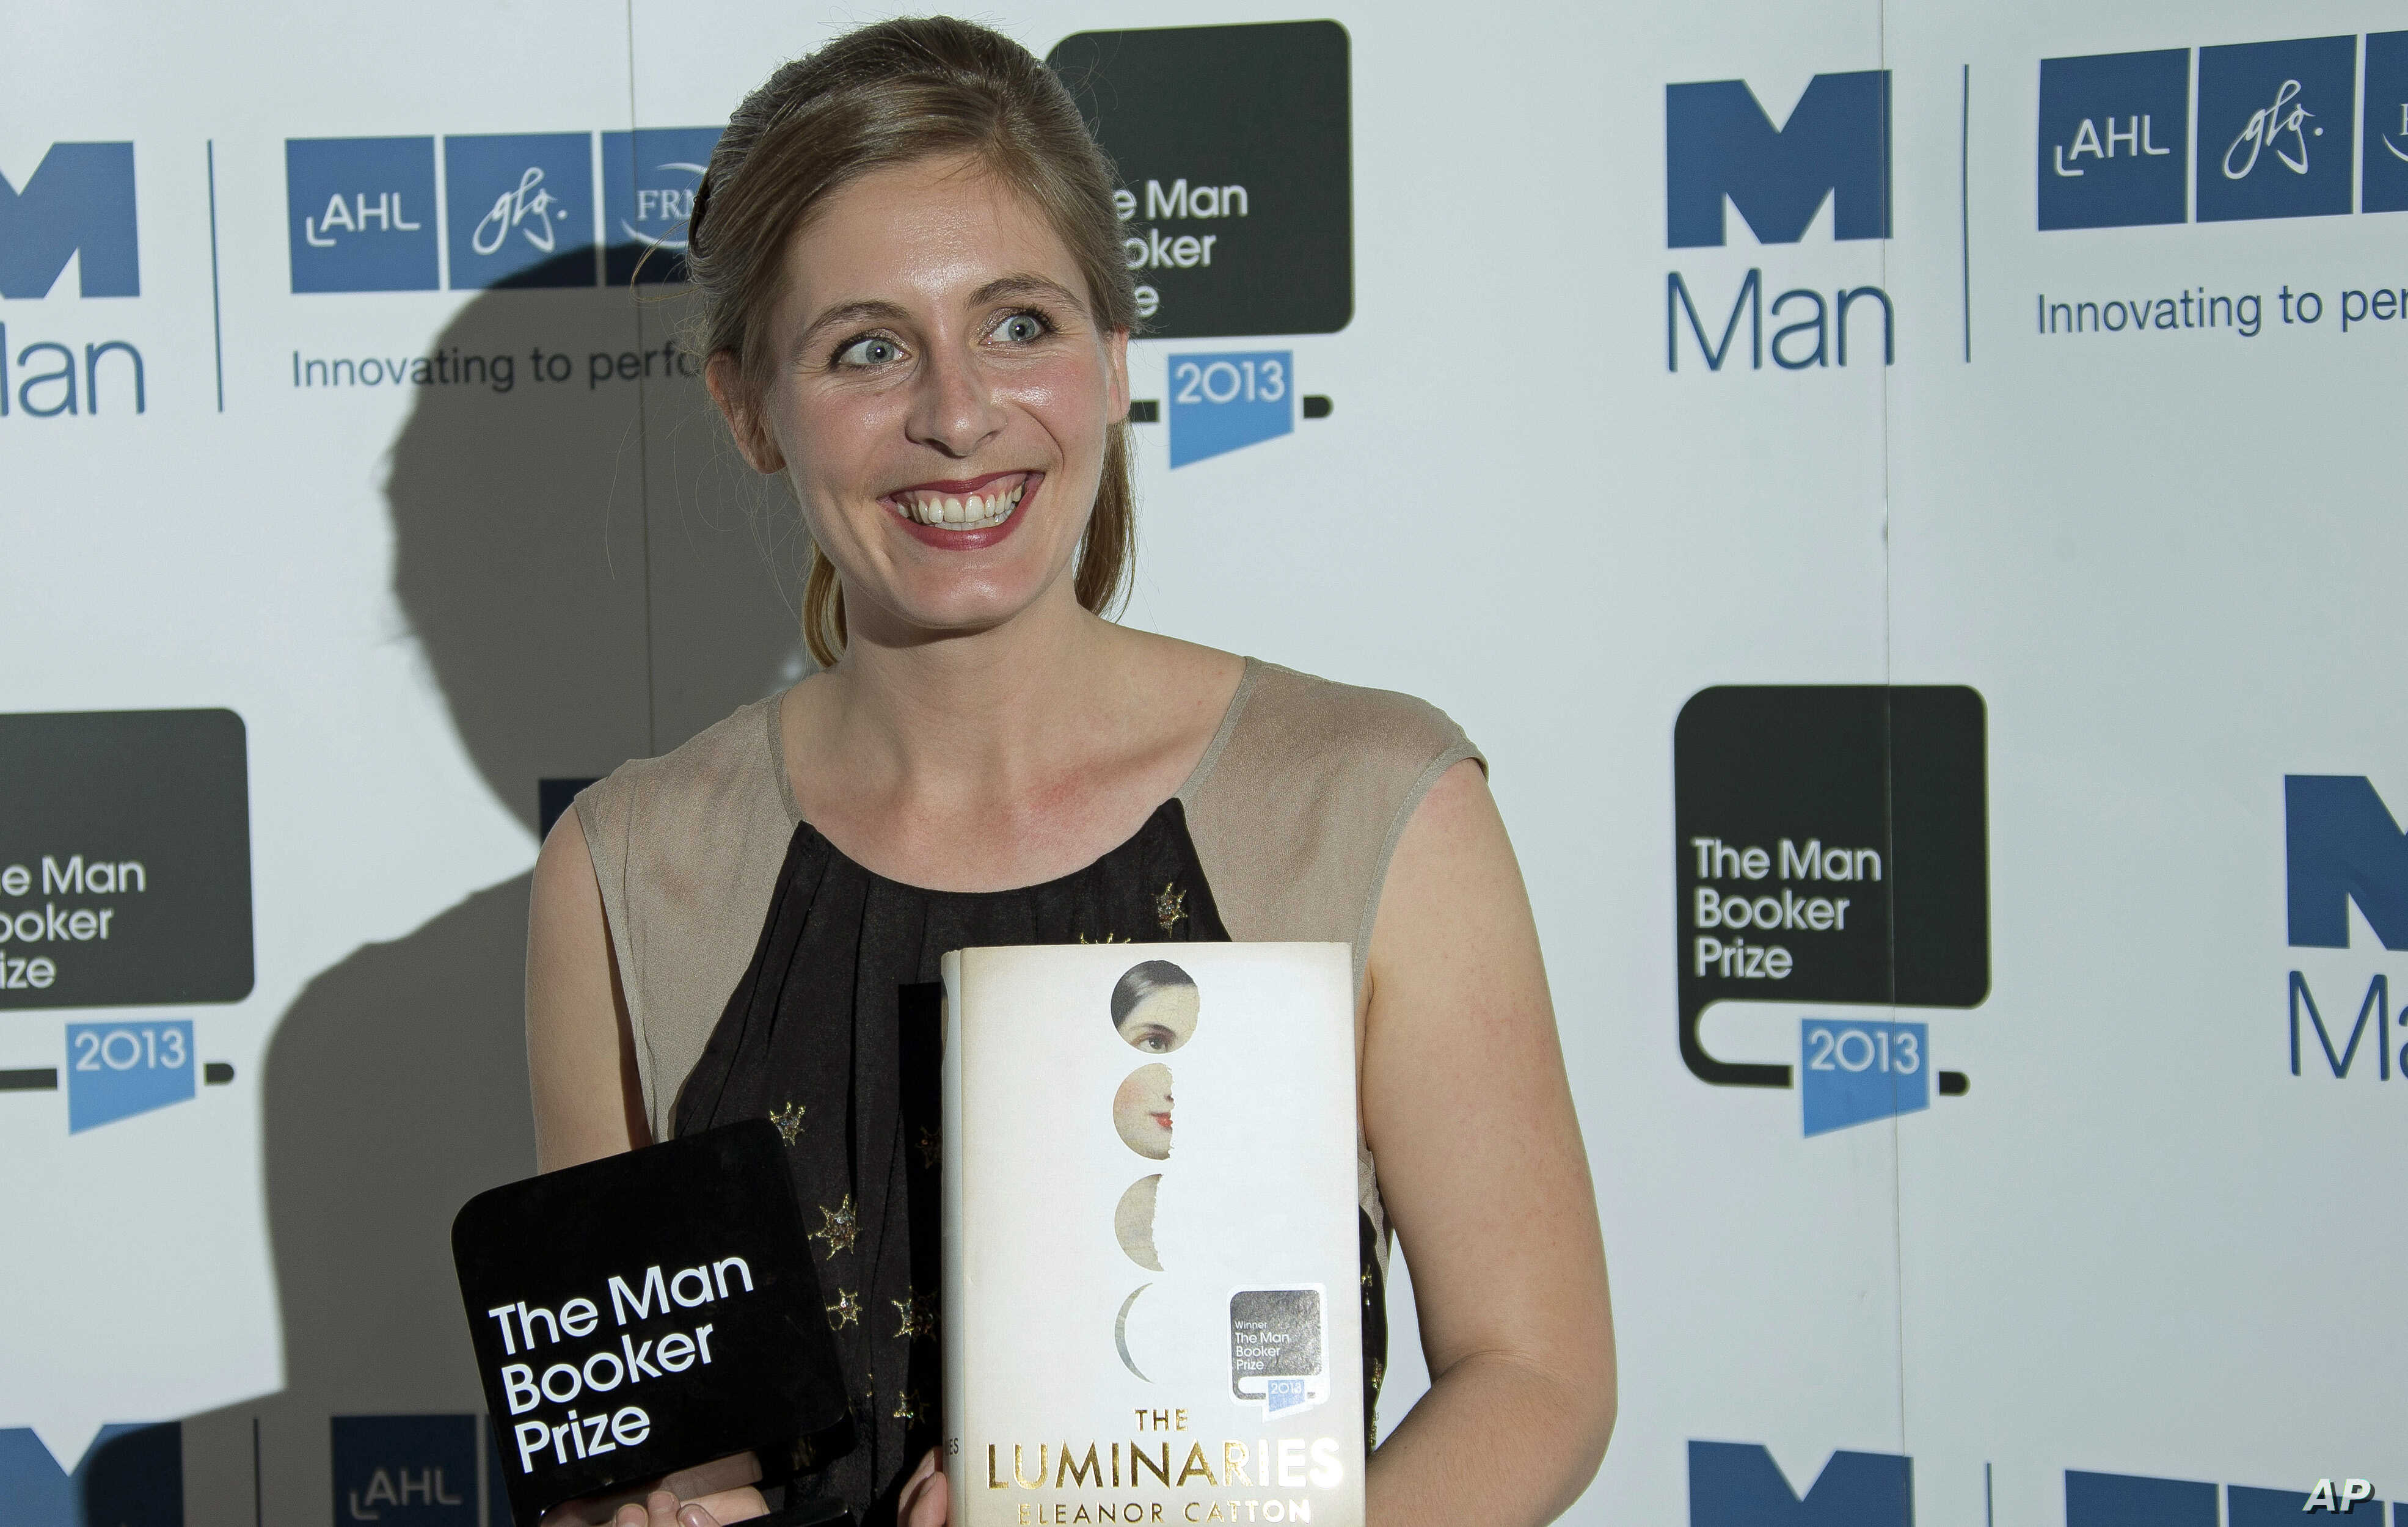 New Zealand writer Eleanor Catton poses after being announced the winner of the Man Booker Prize for Fiction, holding her prize and her book for the photographers, in central London, Oct. 15, 2013.